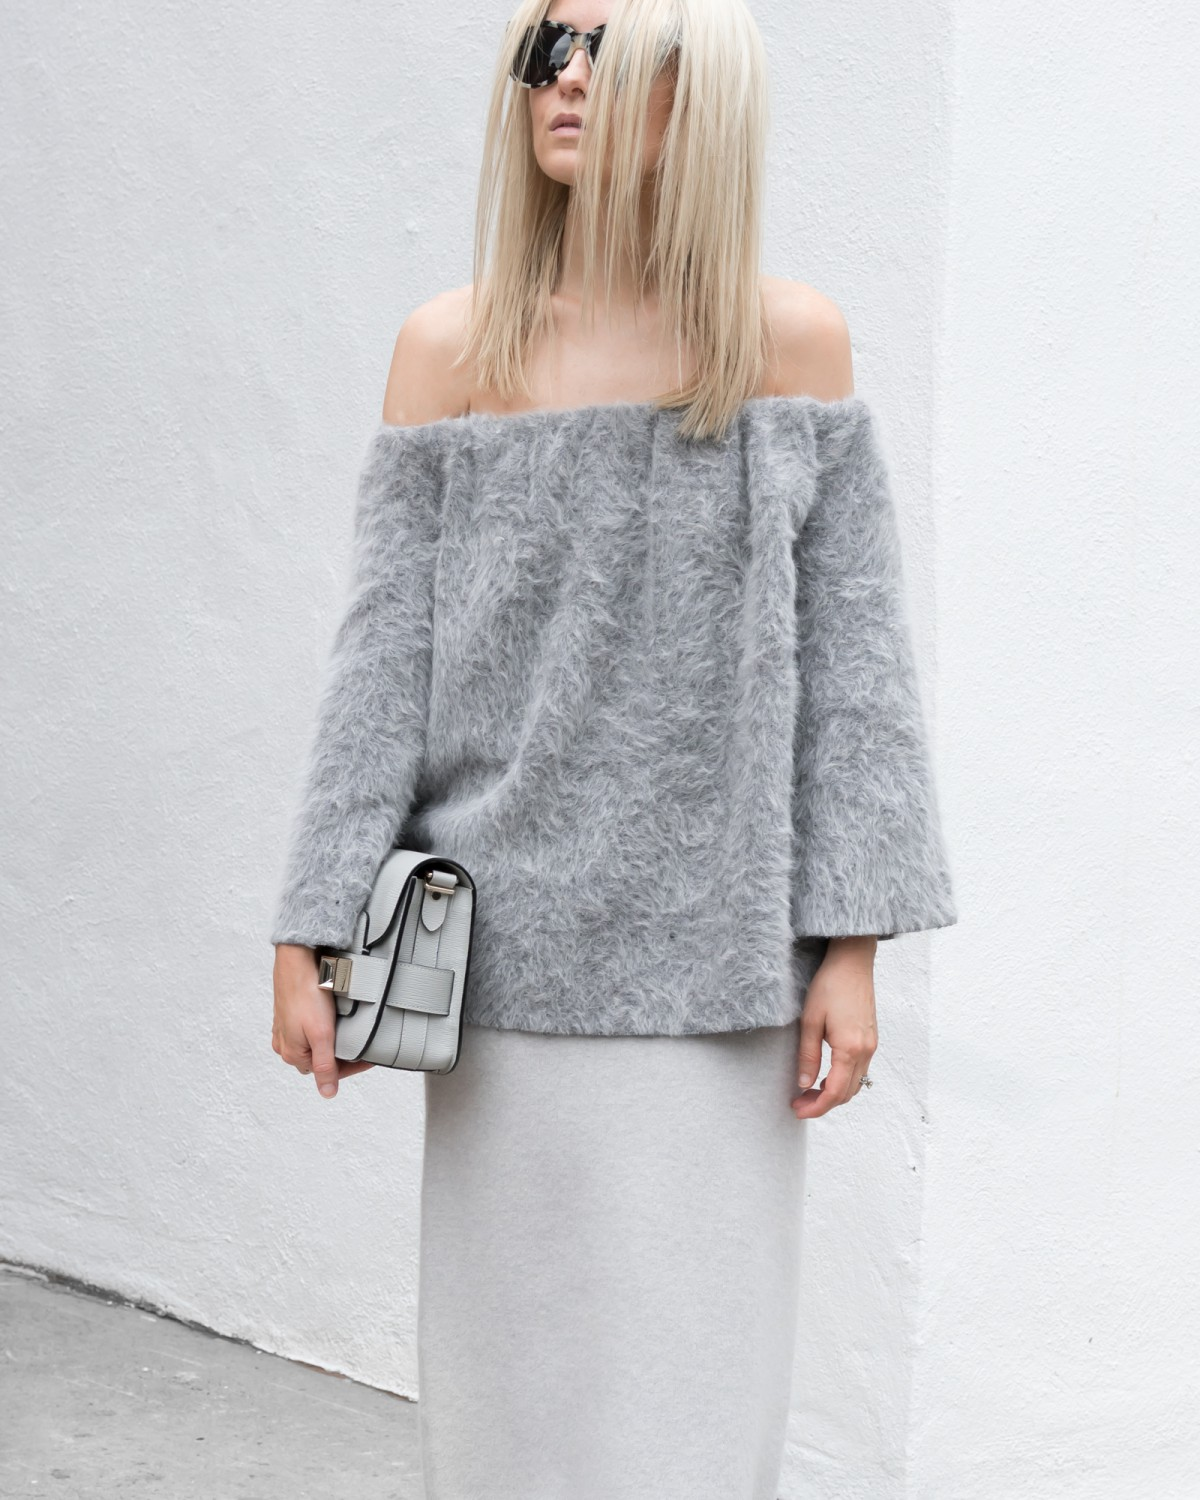 figtny.com | Bare Shoulders + Bell Sleeves